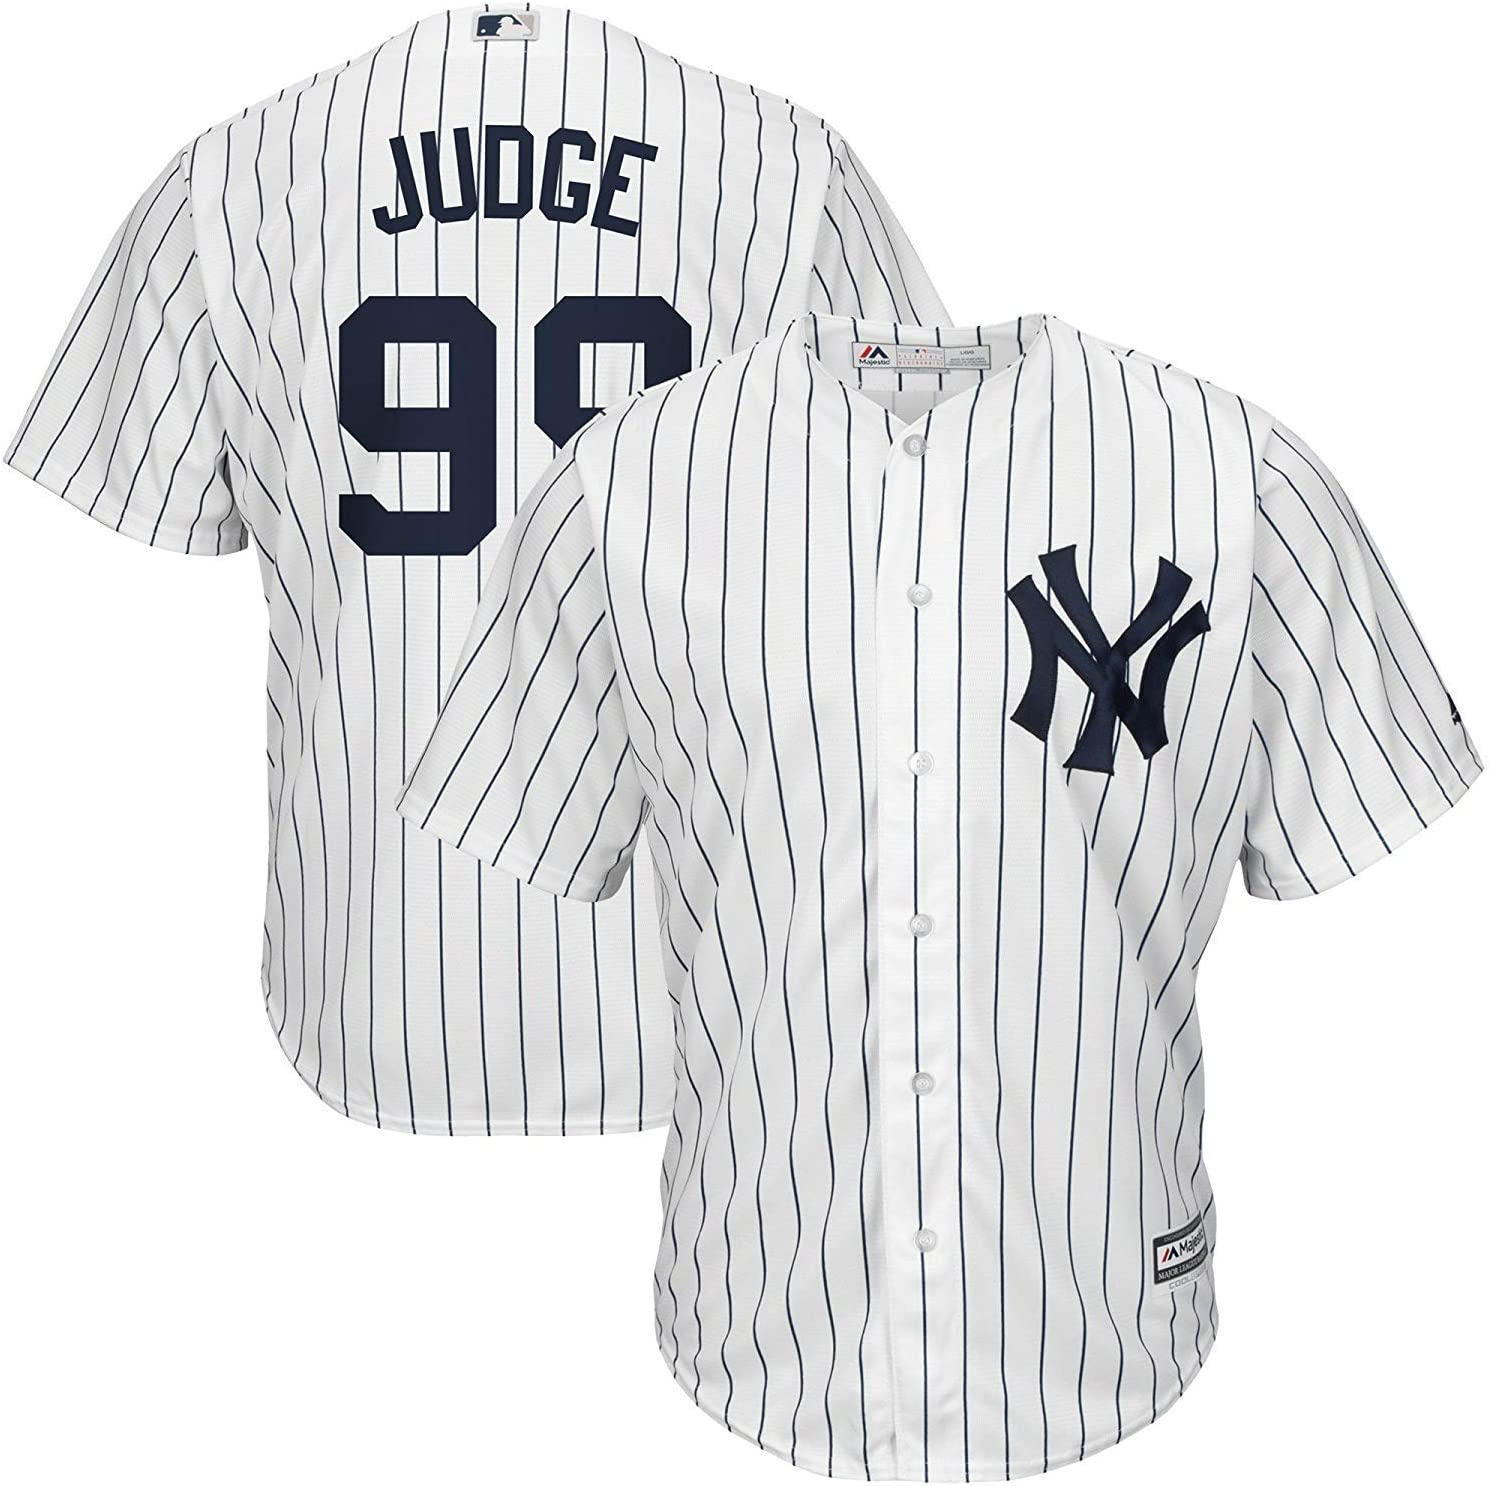 MLB New York Yankees Majestic Cool Base Home Jersey Shirt Top Youth Kids